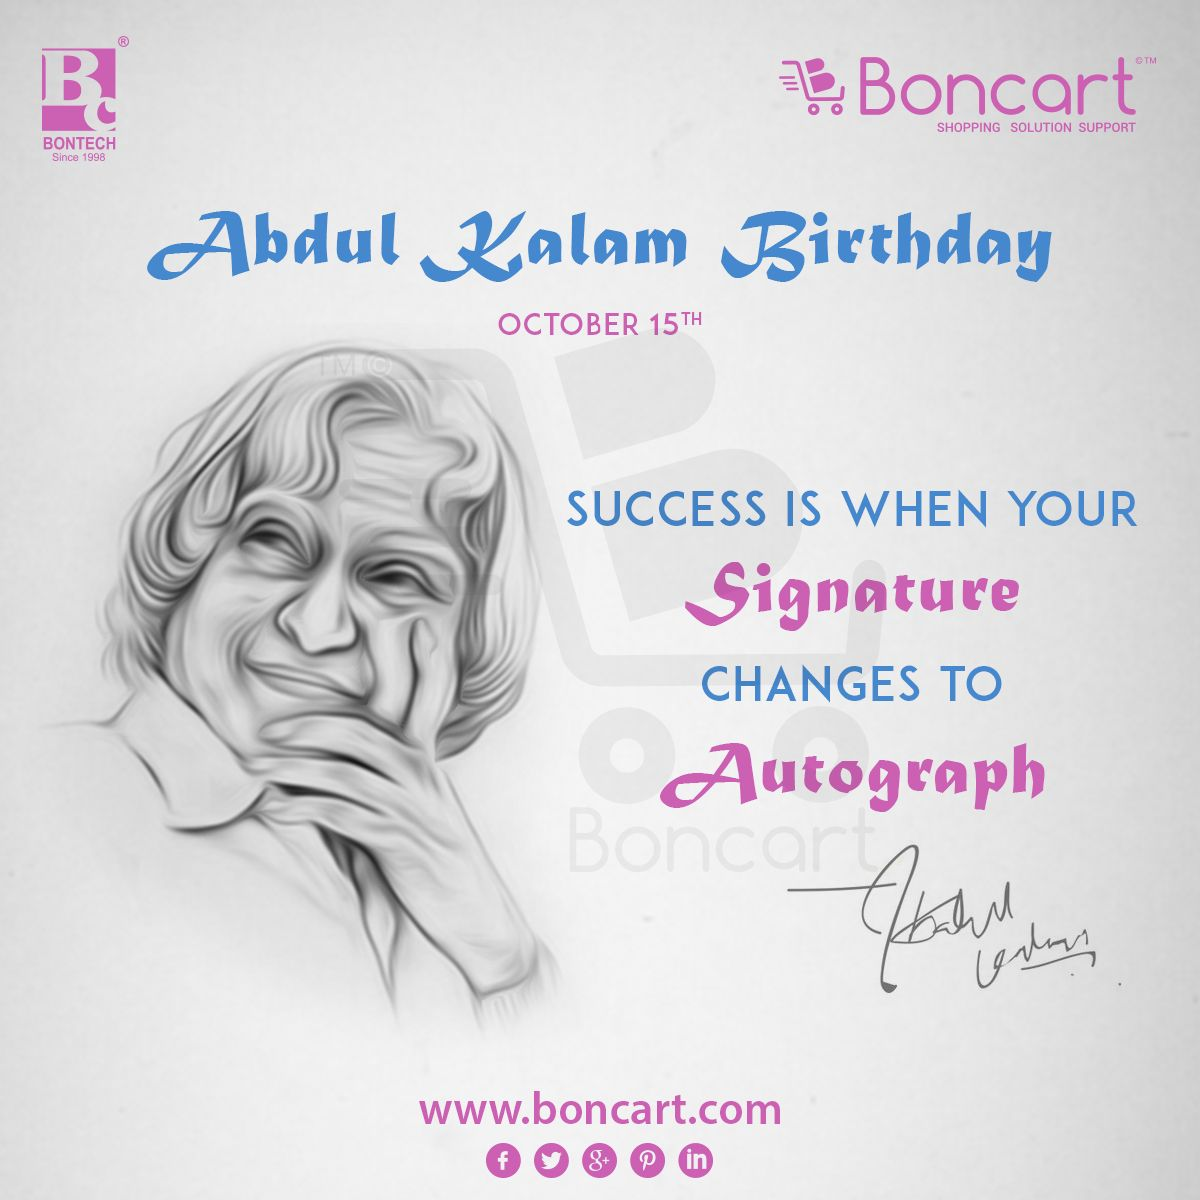 quoteworthy by APJ Abdul Kalam. LOVE THIS definition of